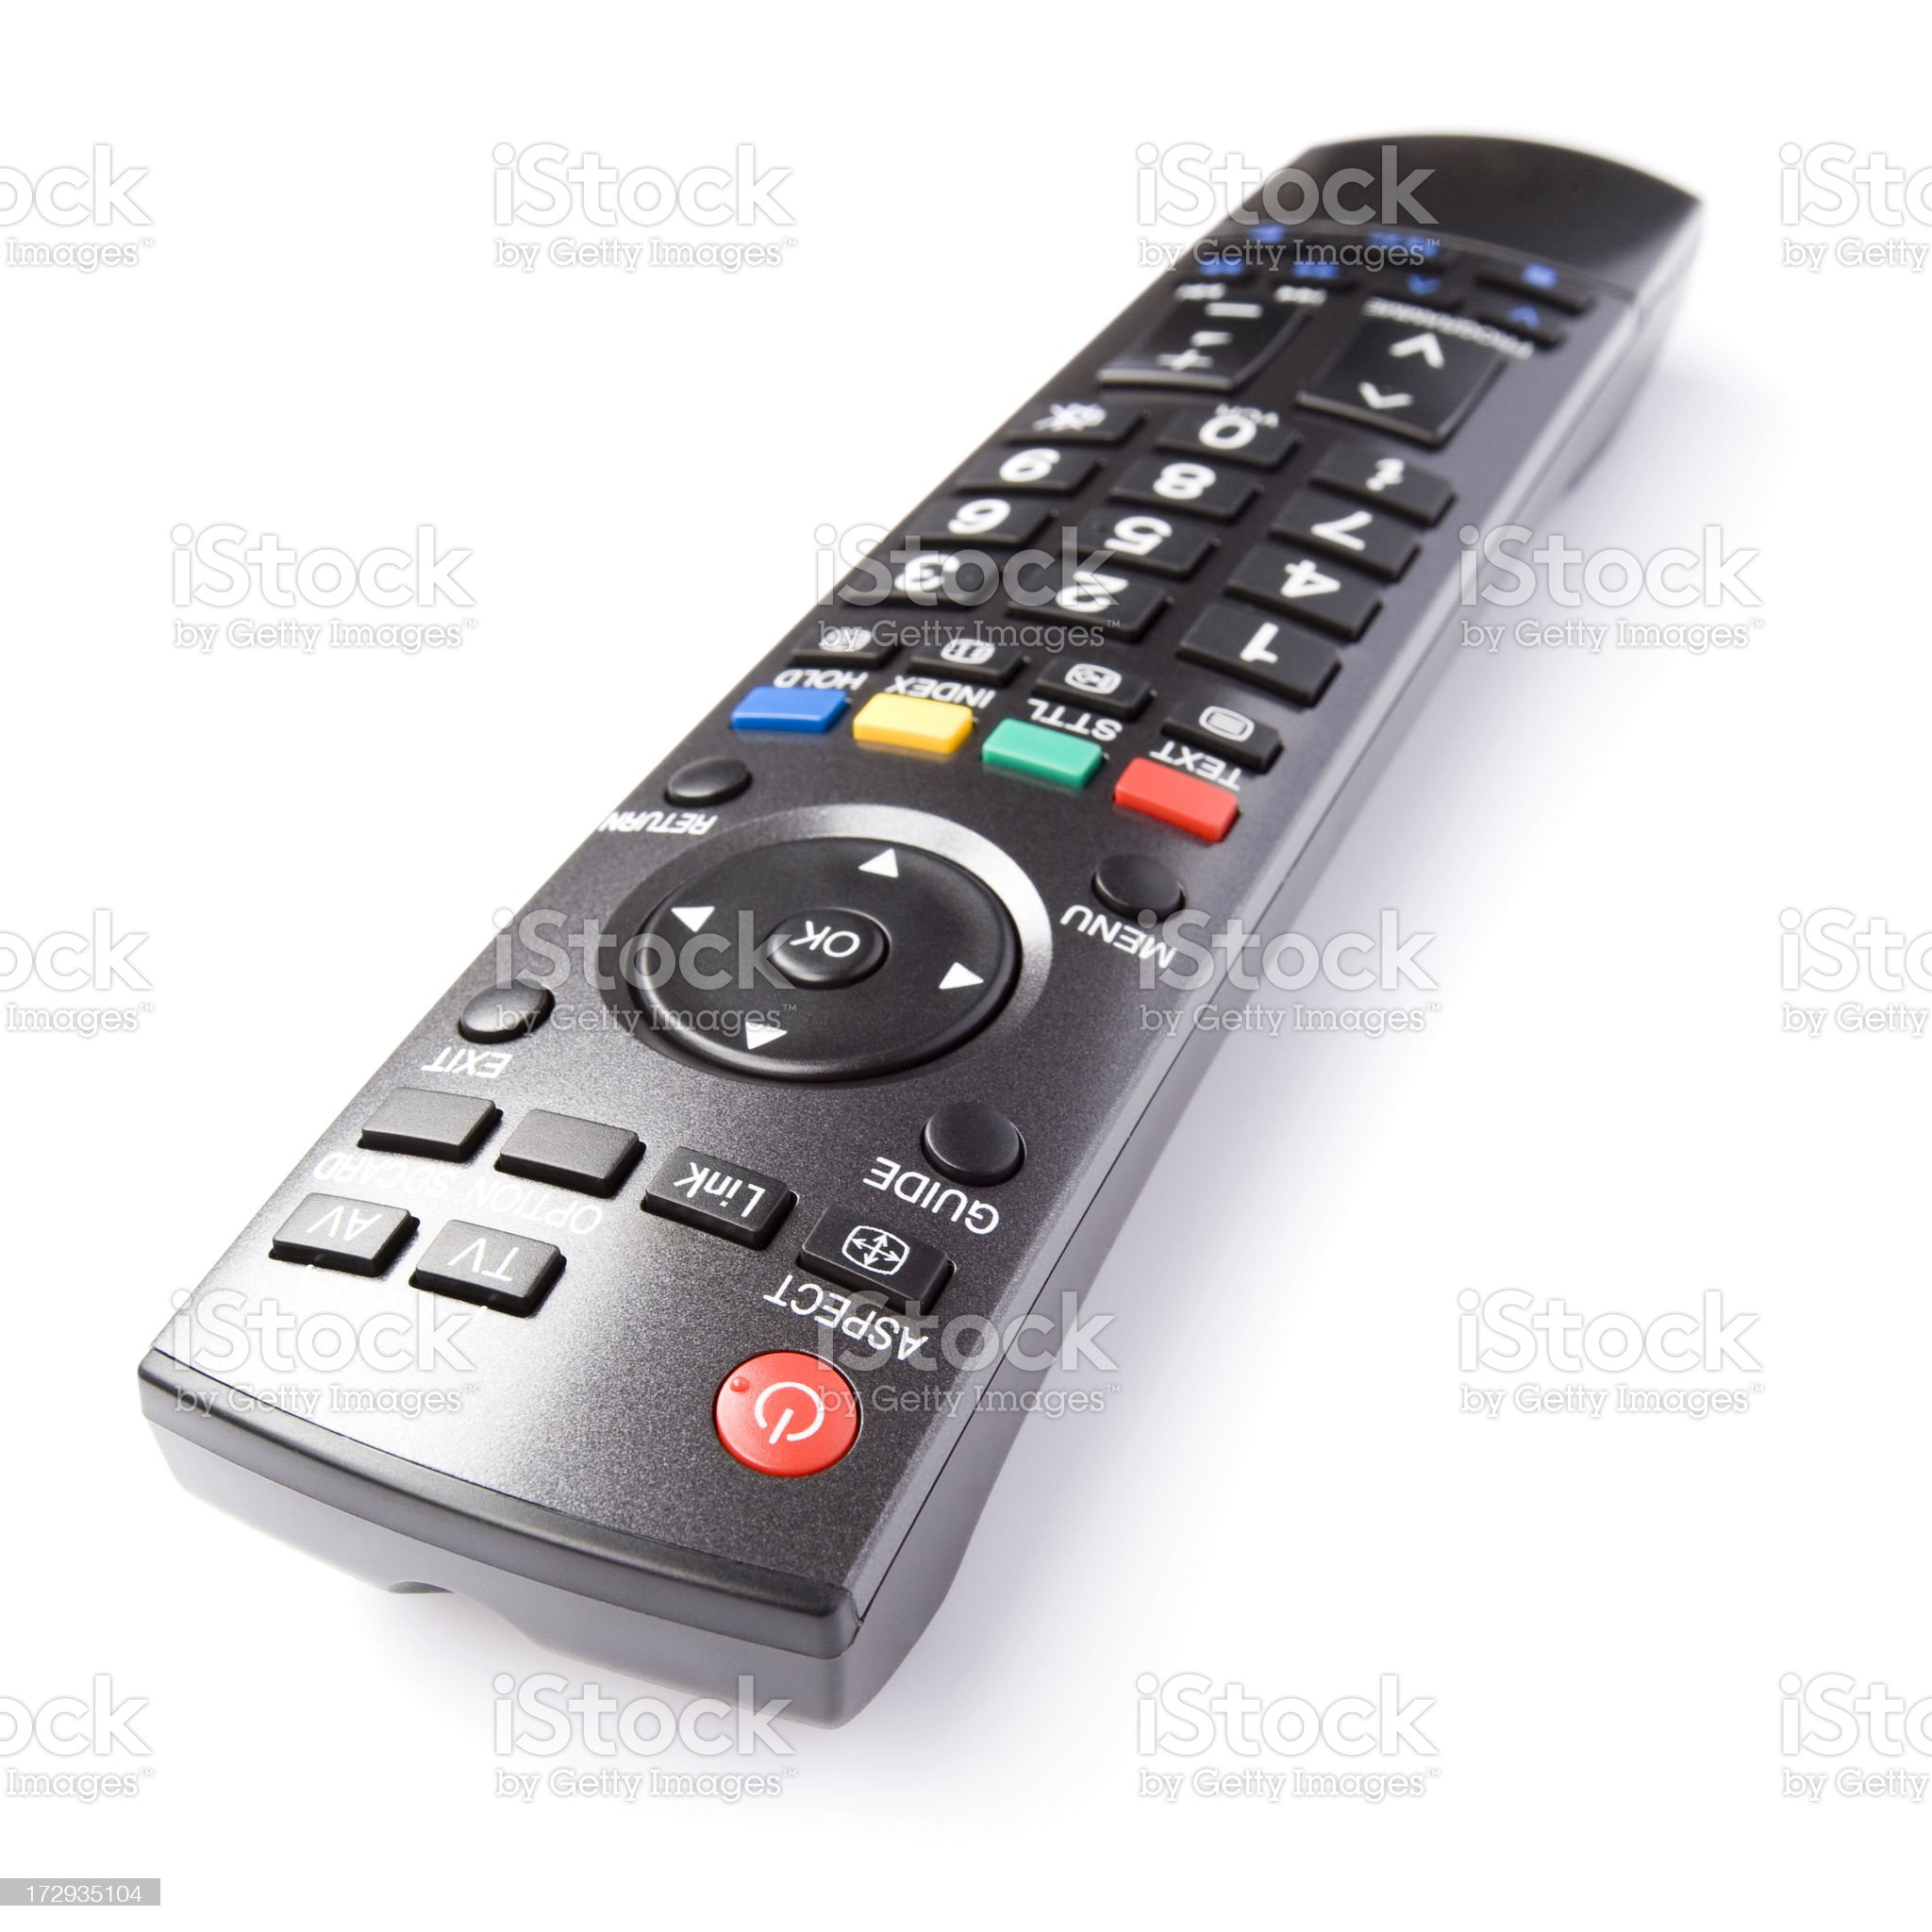 TV remote control, isolated on white background royalty-free stock photo